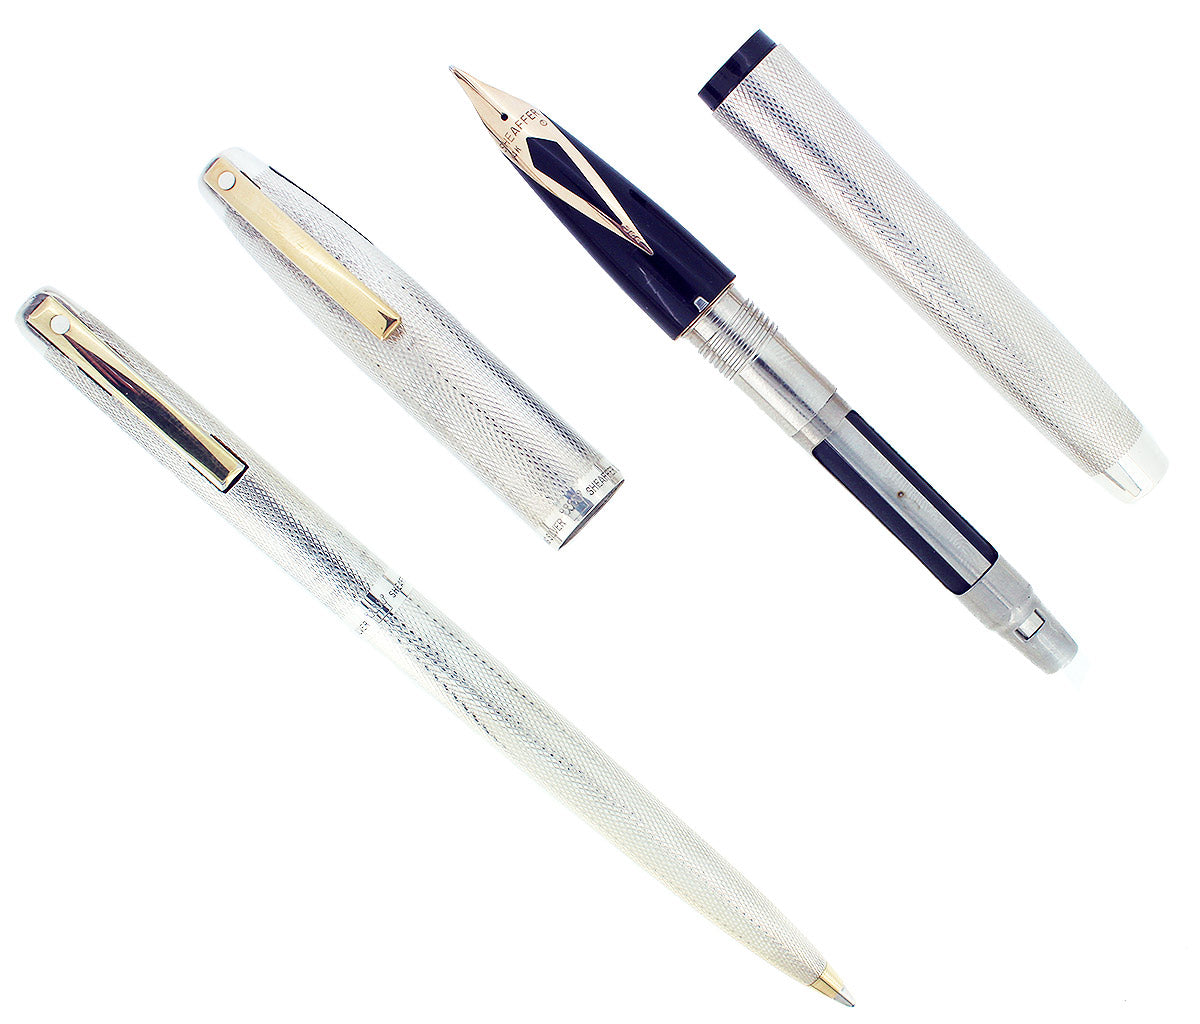 C1972 SHEAFFER STERLING IMPERIAL 826 BARLEY FOUNTAIN PEN & BALLPOINT PEN SET MINT OFFERED BY ANTIQUE DIGGER